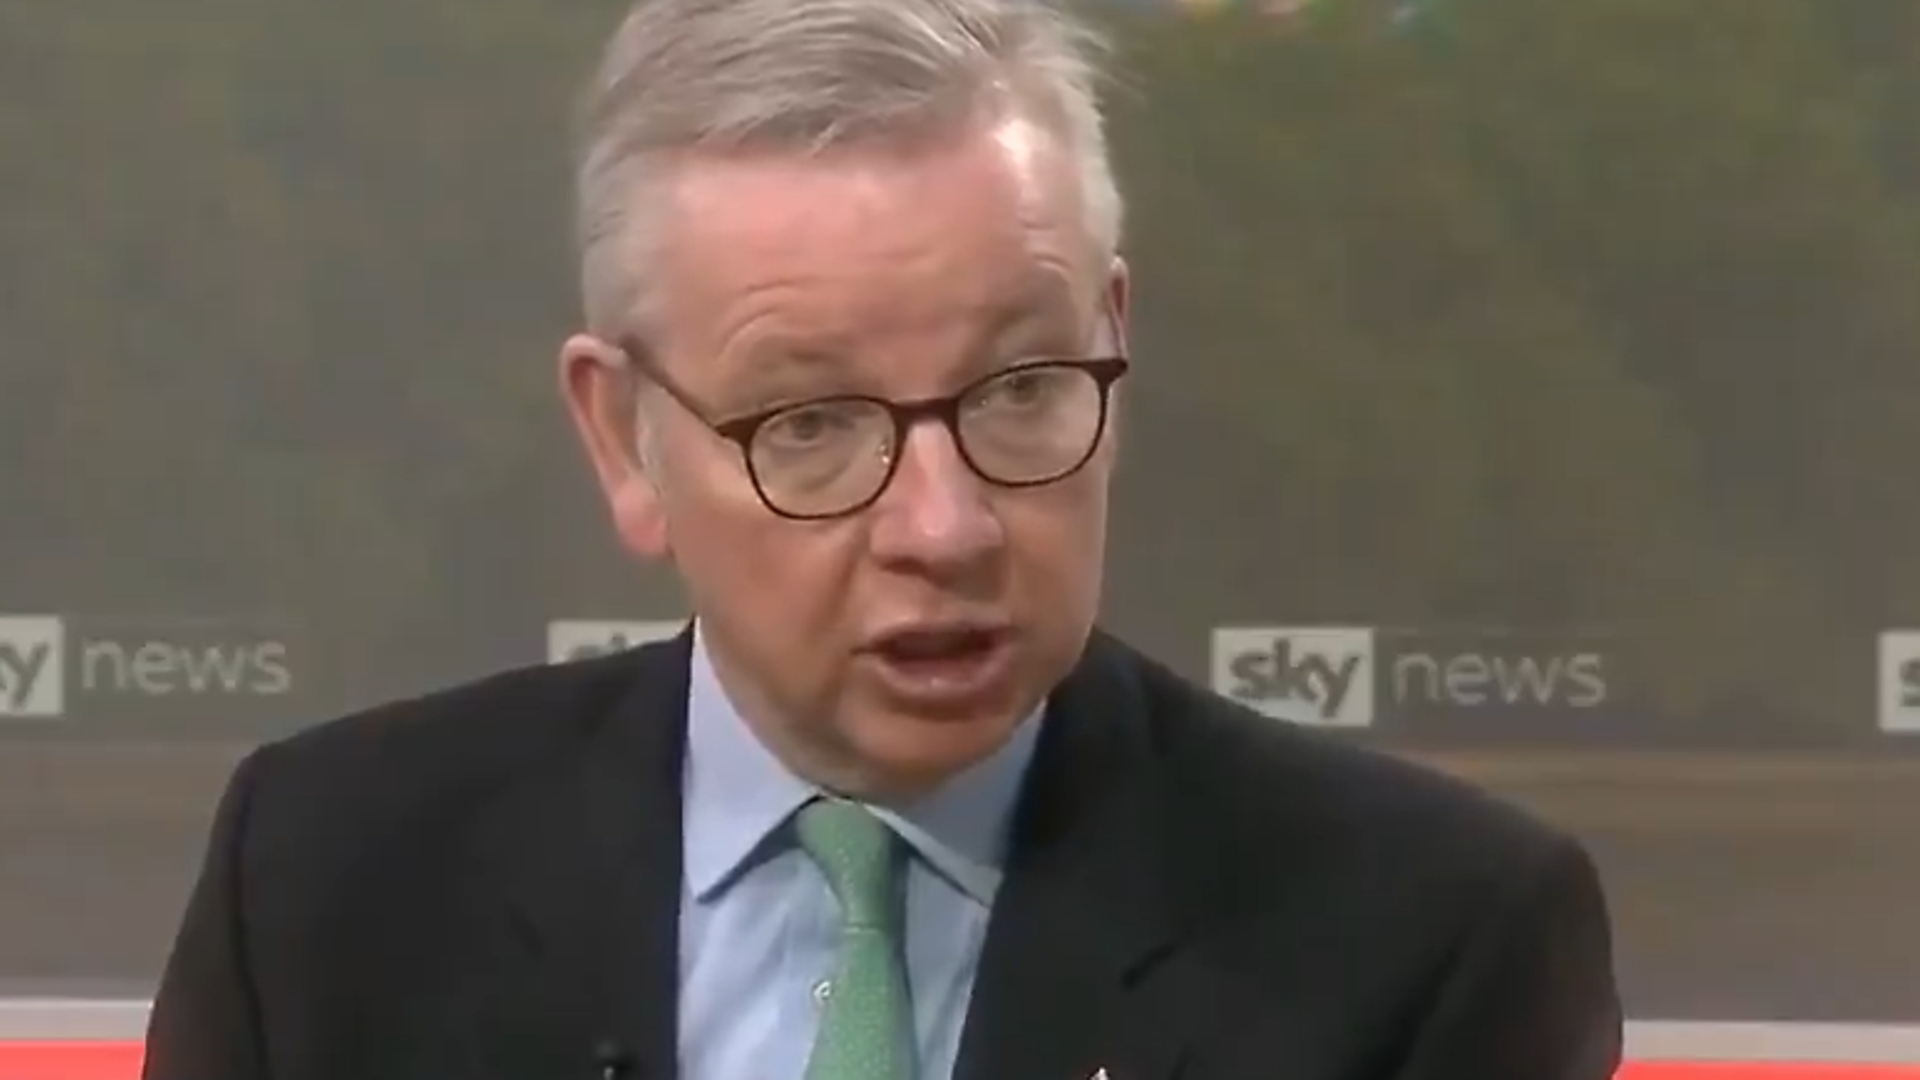 Michael Gove is asked about Brexit developments - Credit: Sky News